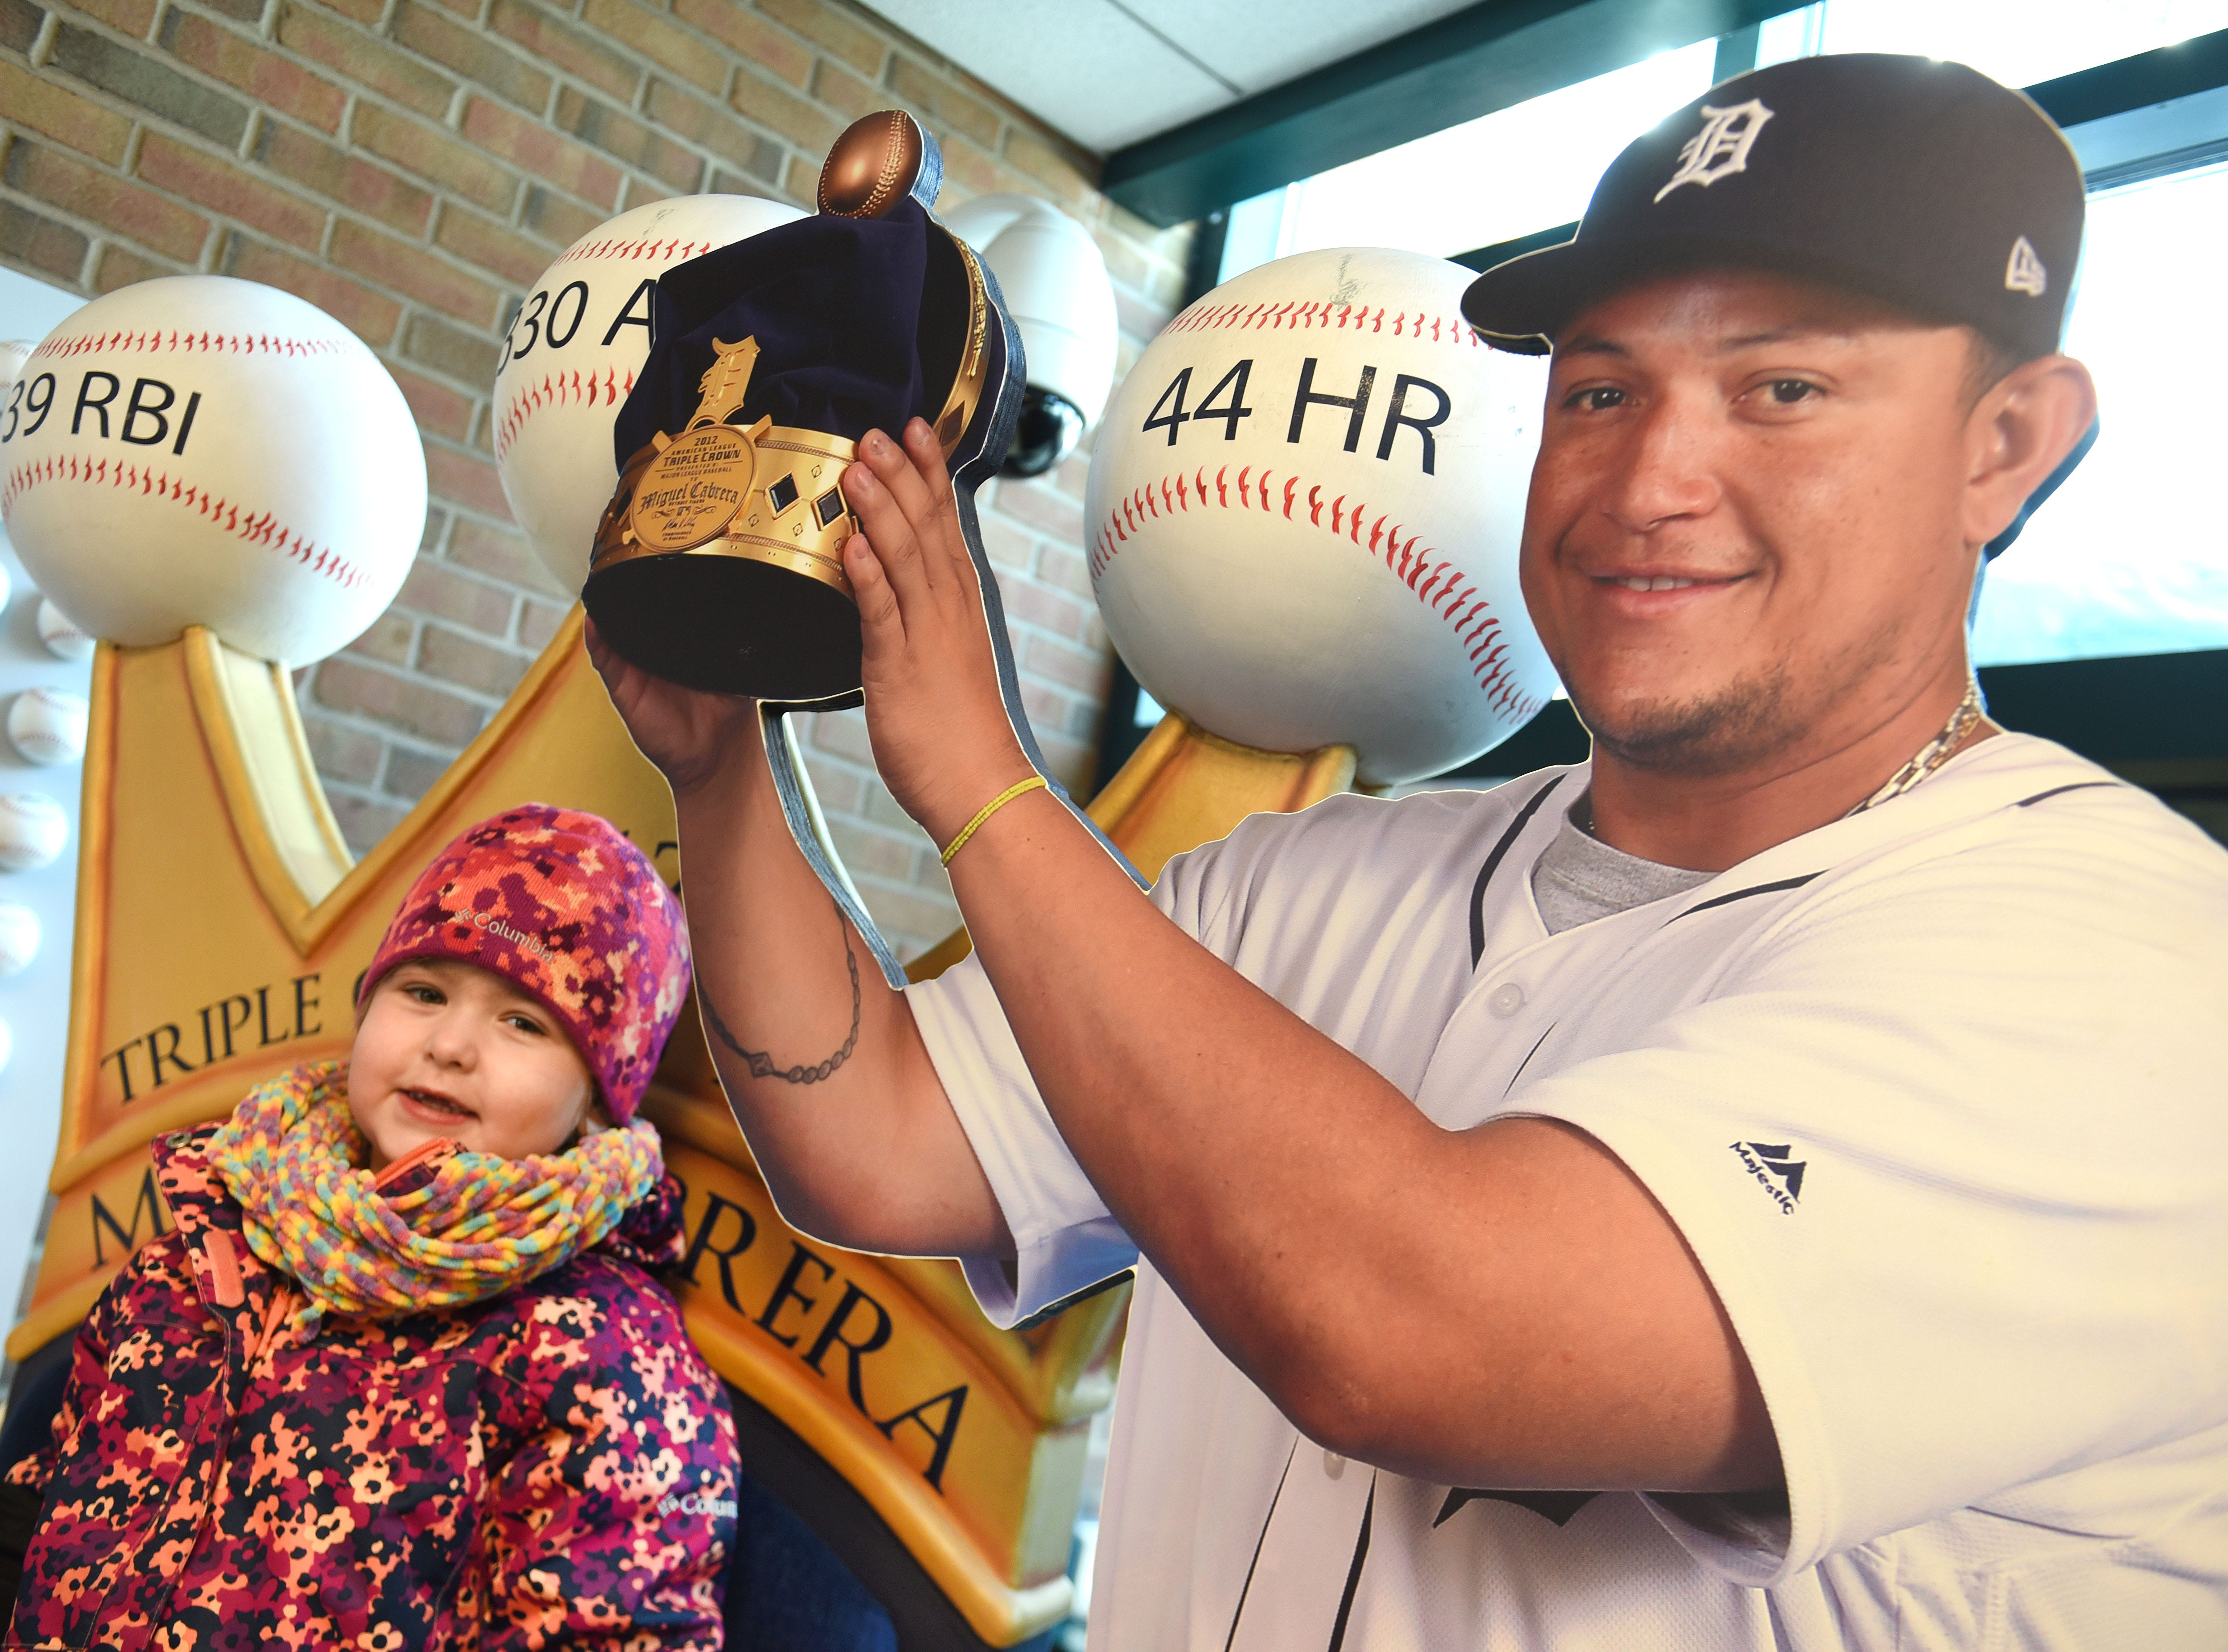 Emersyn Condon of Middleville enjoys posing with a cut out of her hero Miguel Cabrera during TigerFest 2019 at Comerica Park.